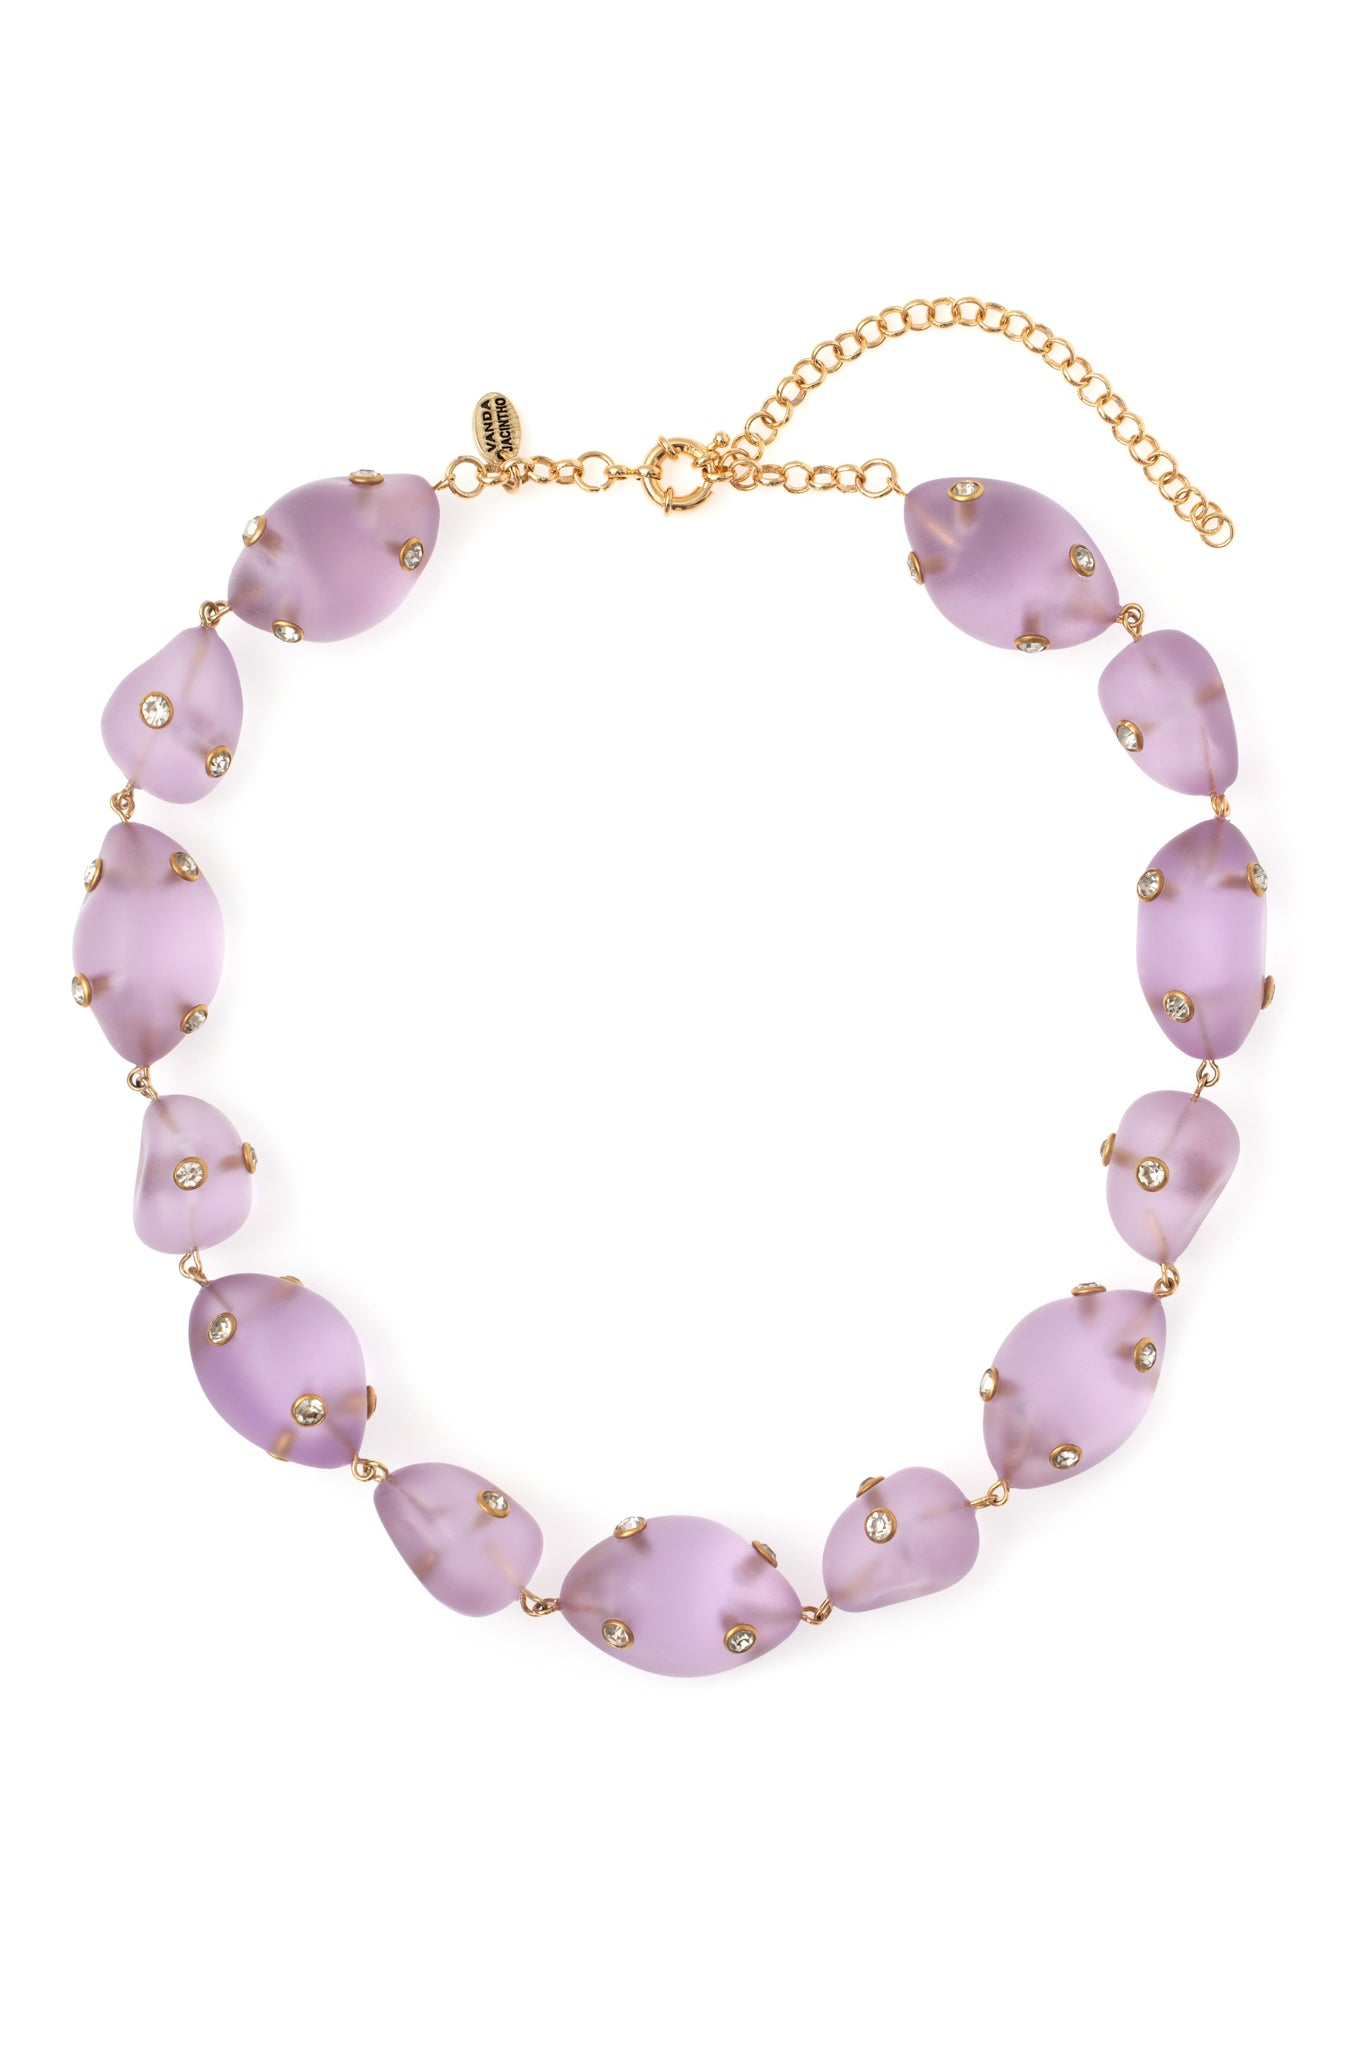 LILAC ARTSY NECKLACE